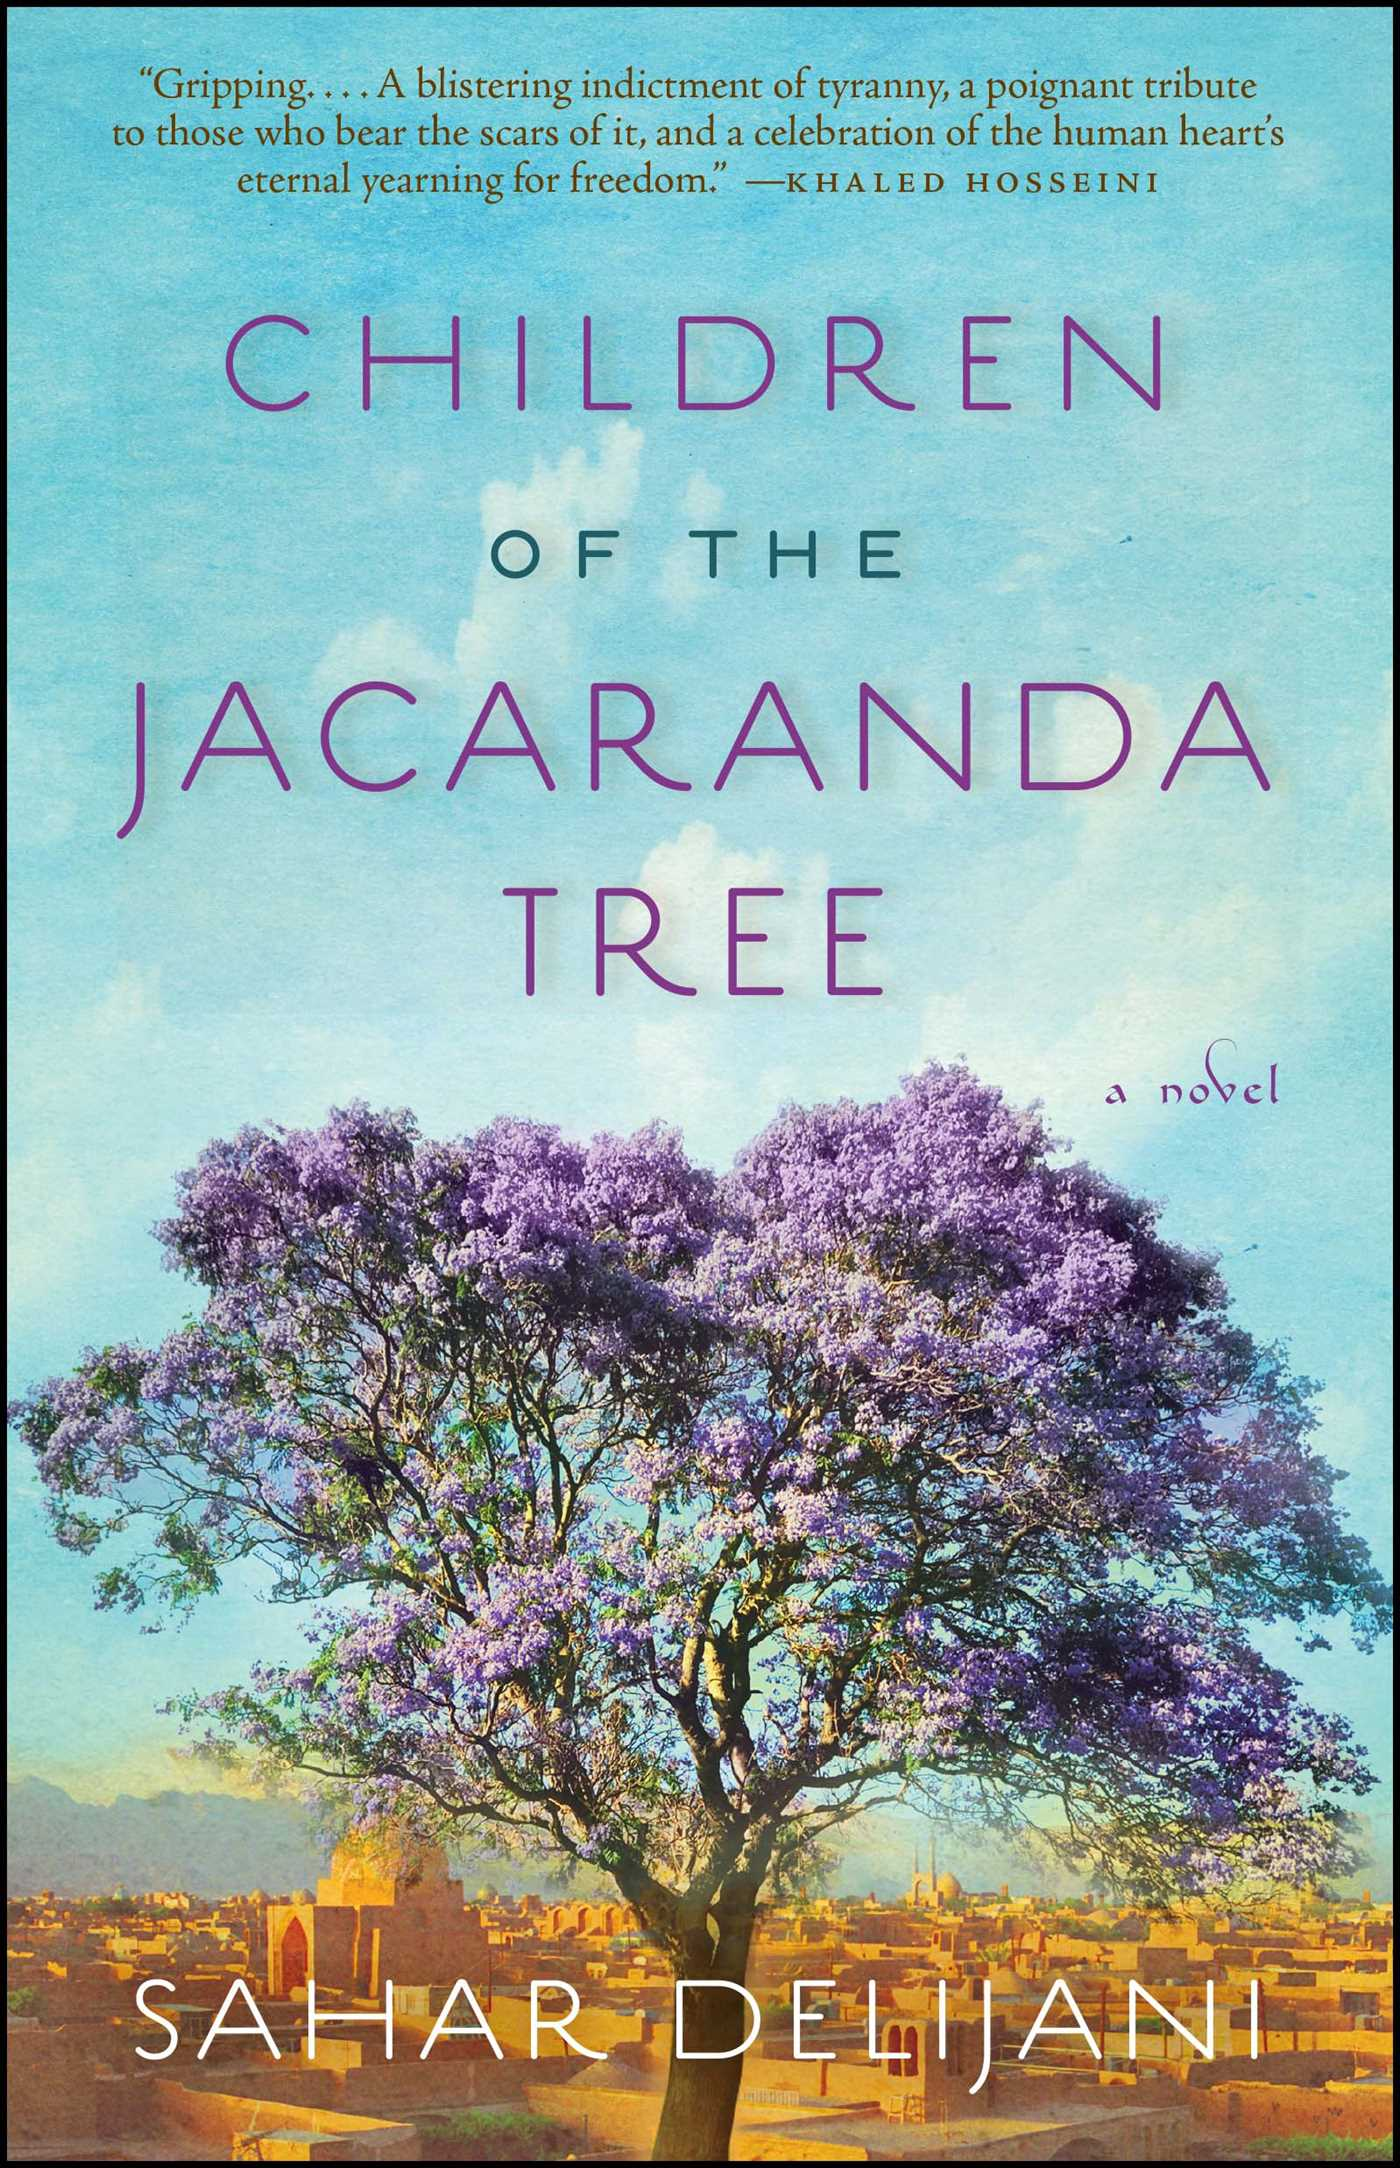 Children of the jacaranda tree 9781476709116 hr